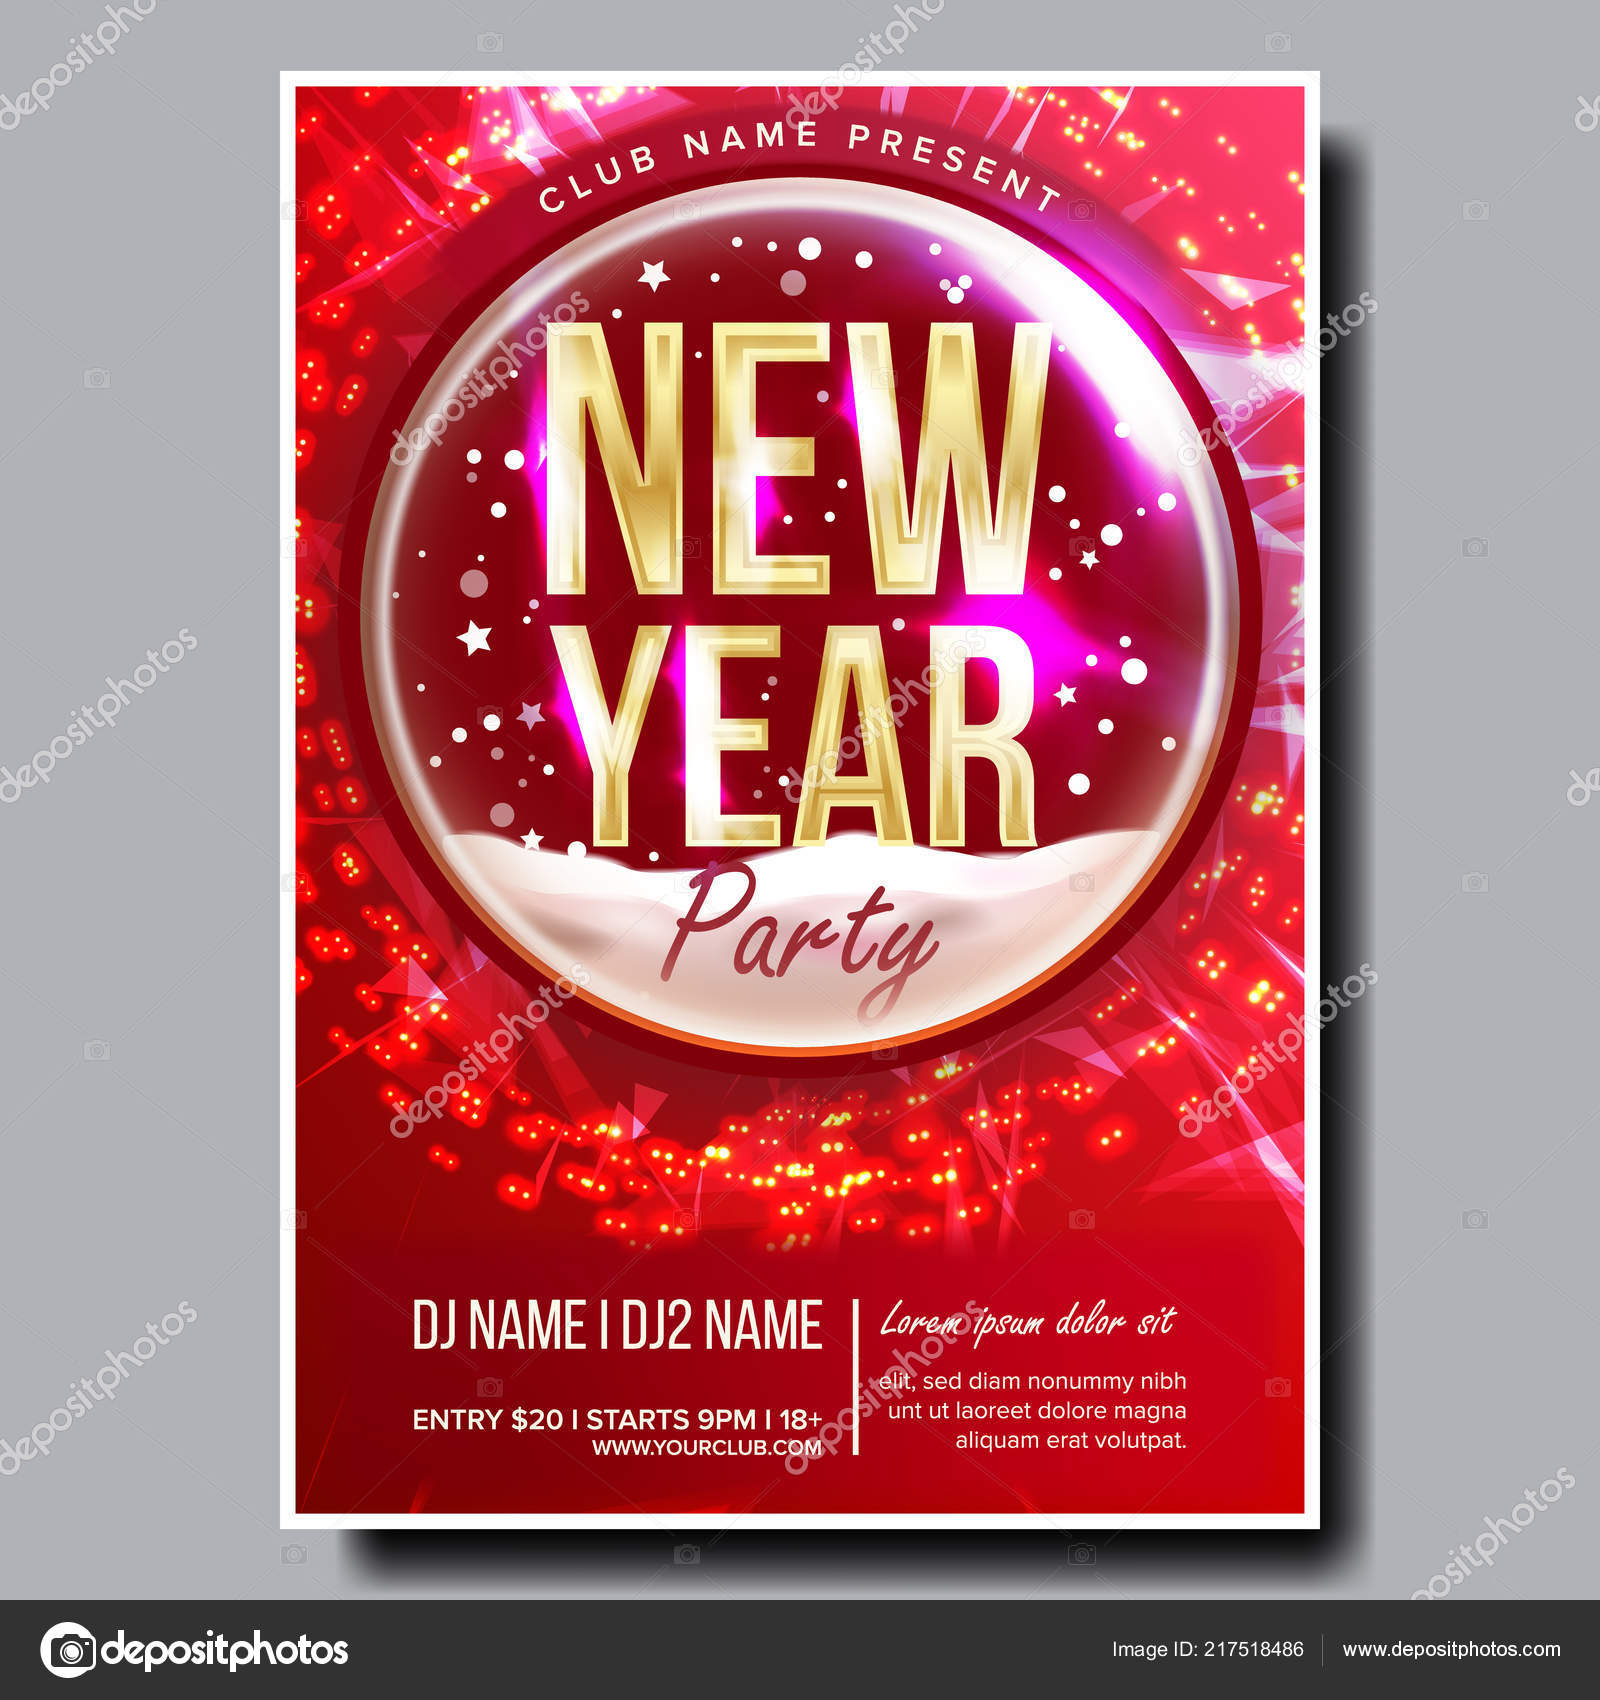 Christmas Concert Flyer 2019 Party Flyer Poster Vector